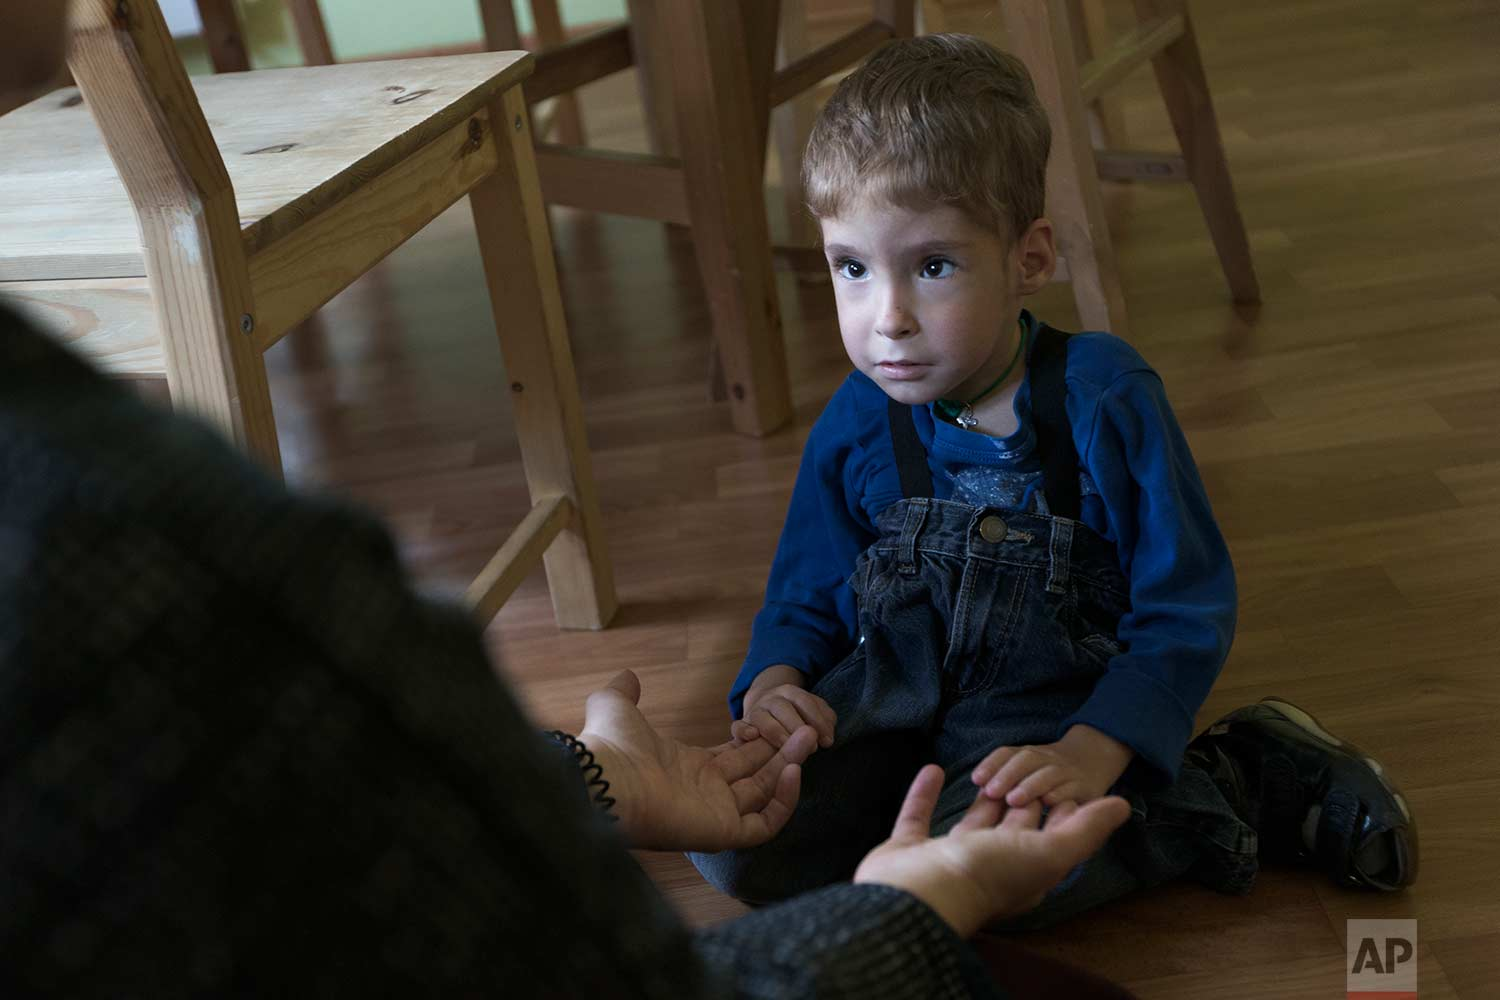 Volunteer Yelizaveta, left, looks at 4-year-old pupil, Syoma, at the St. Sophia orphanage in Moscow, Russia, on Tuesday, Sept. 12, 2017. (AP Photo/Ivan Sekretarev)